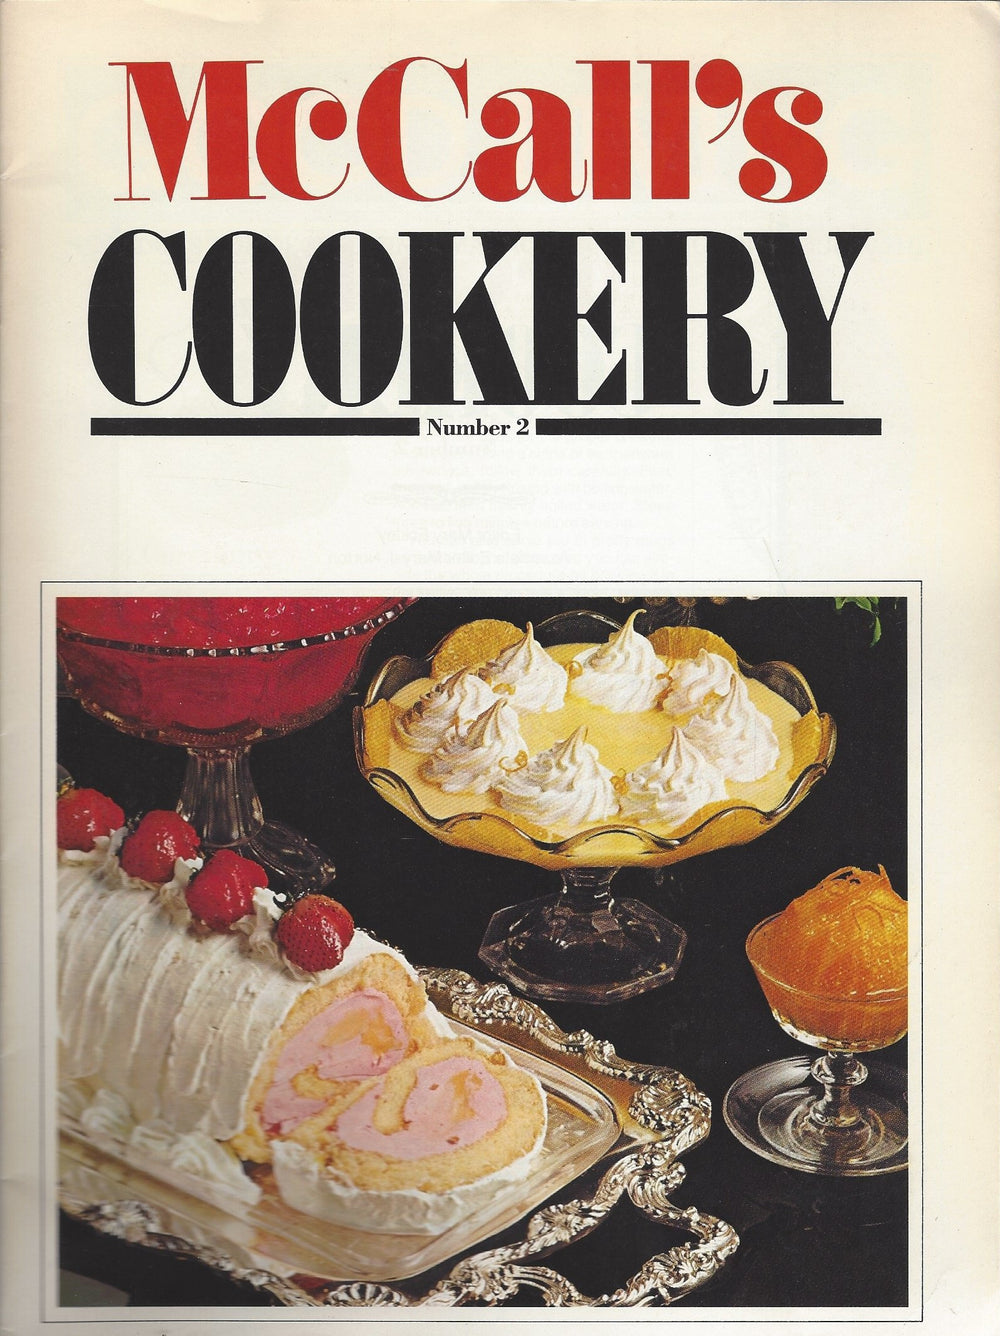 McCall's Cookery No. 2 (1985)